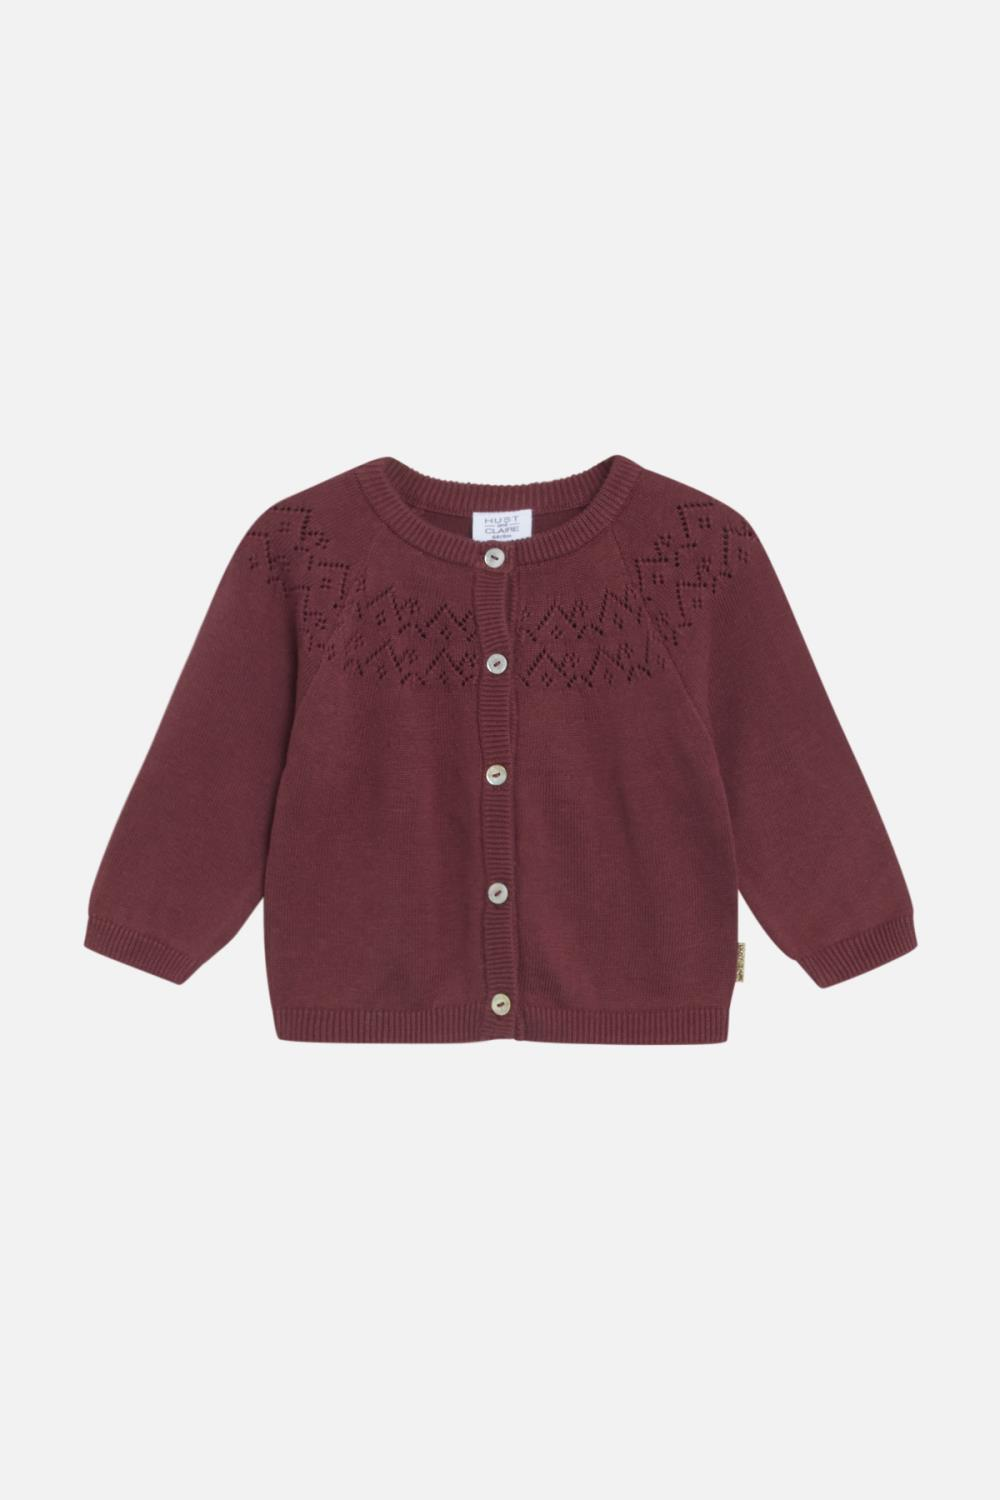 Hust and Claire - Cardigan Cleo, mahogany